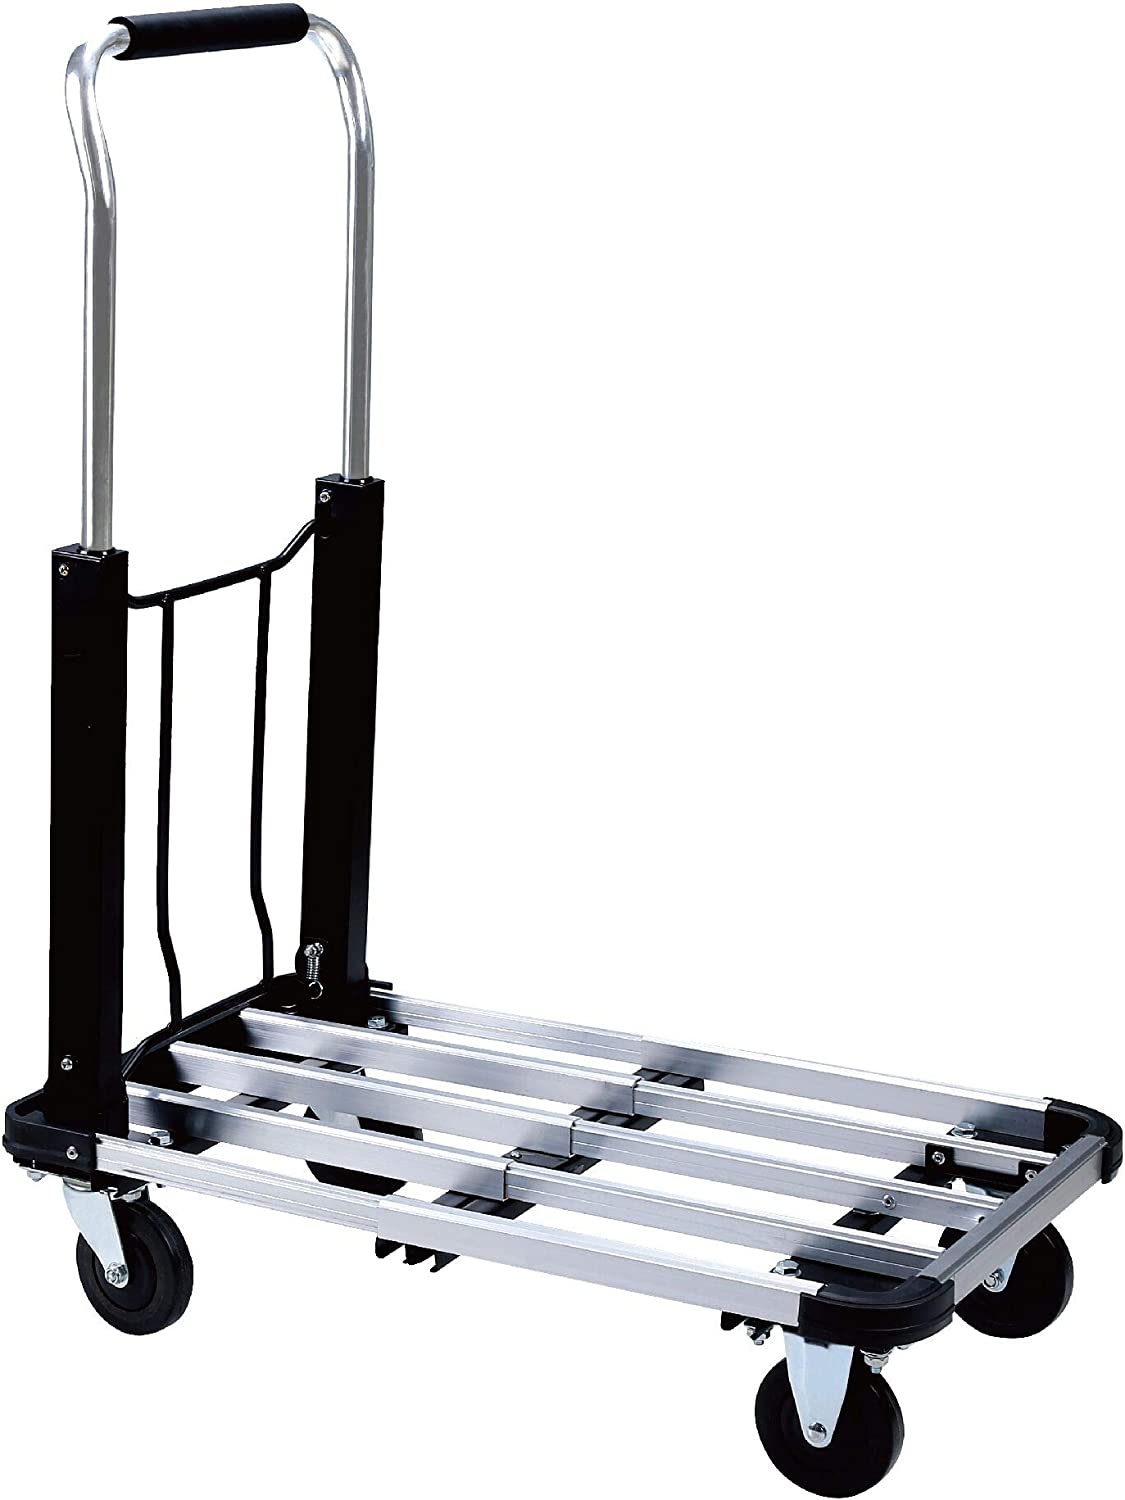 Foldable Push Cart Aluminum Alloy Platform Cart with 4-Wheel, 330-LB Capacity